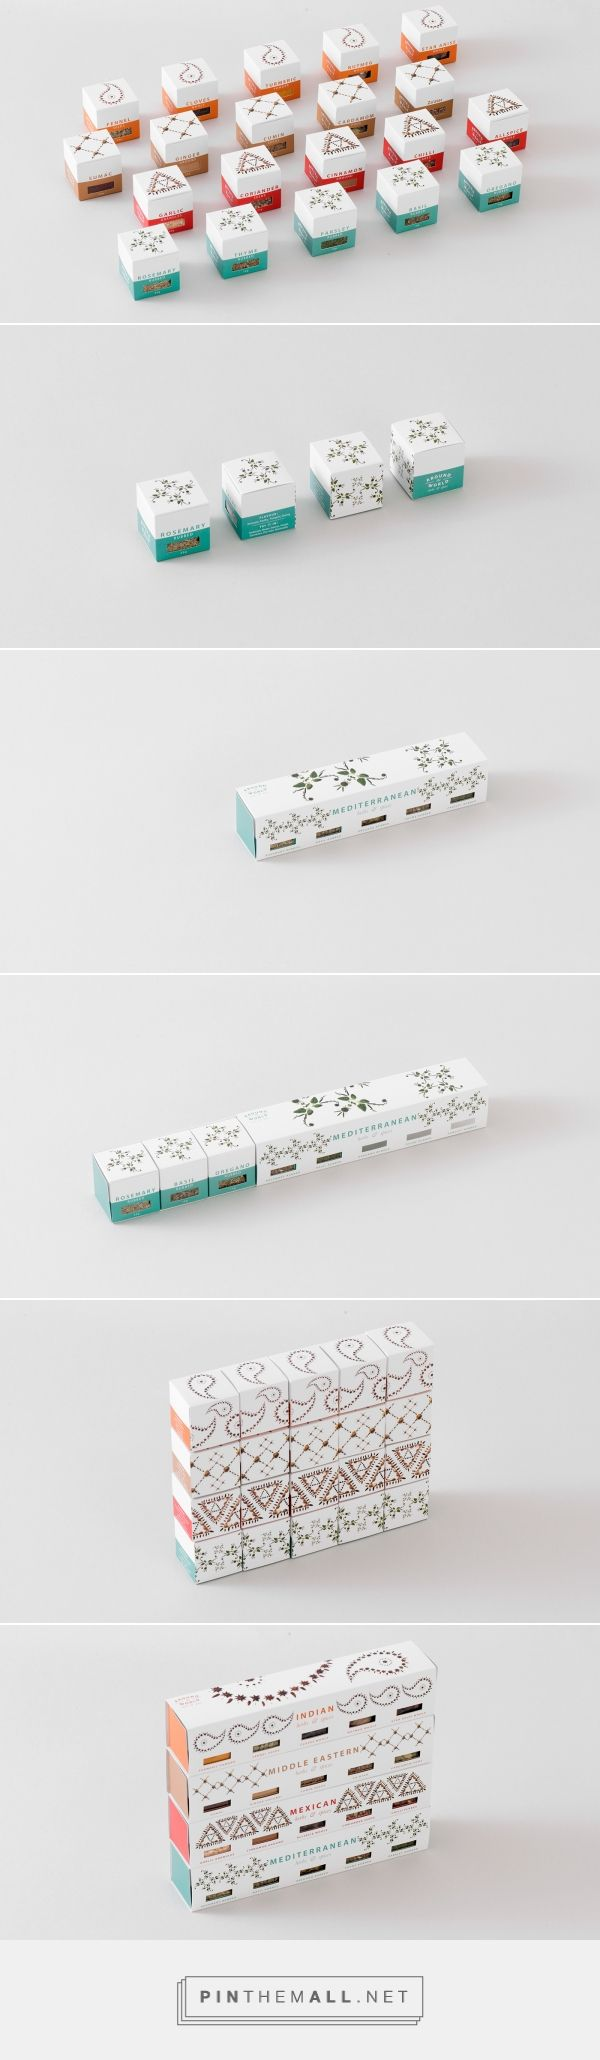 Around the World / herbs & spices packaging by Jung Ah Kim